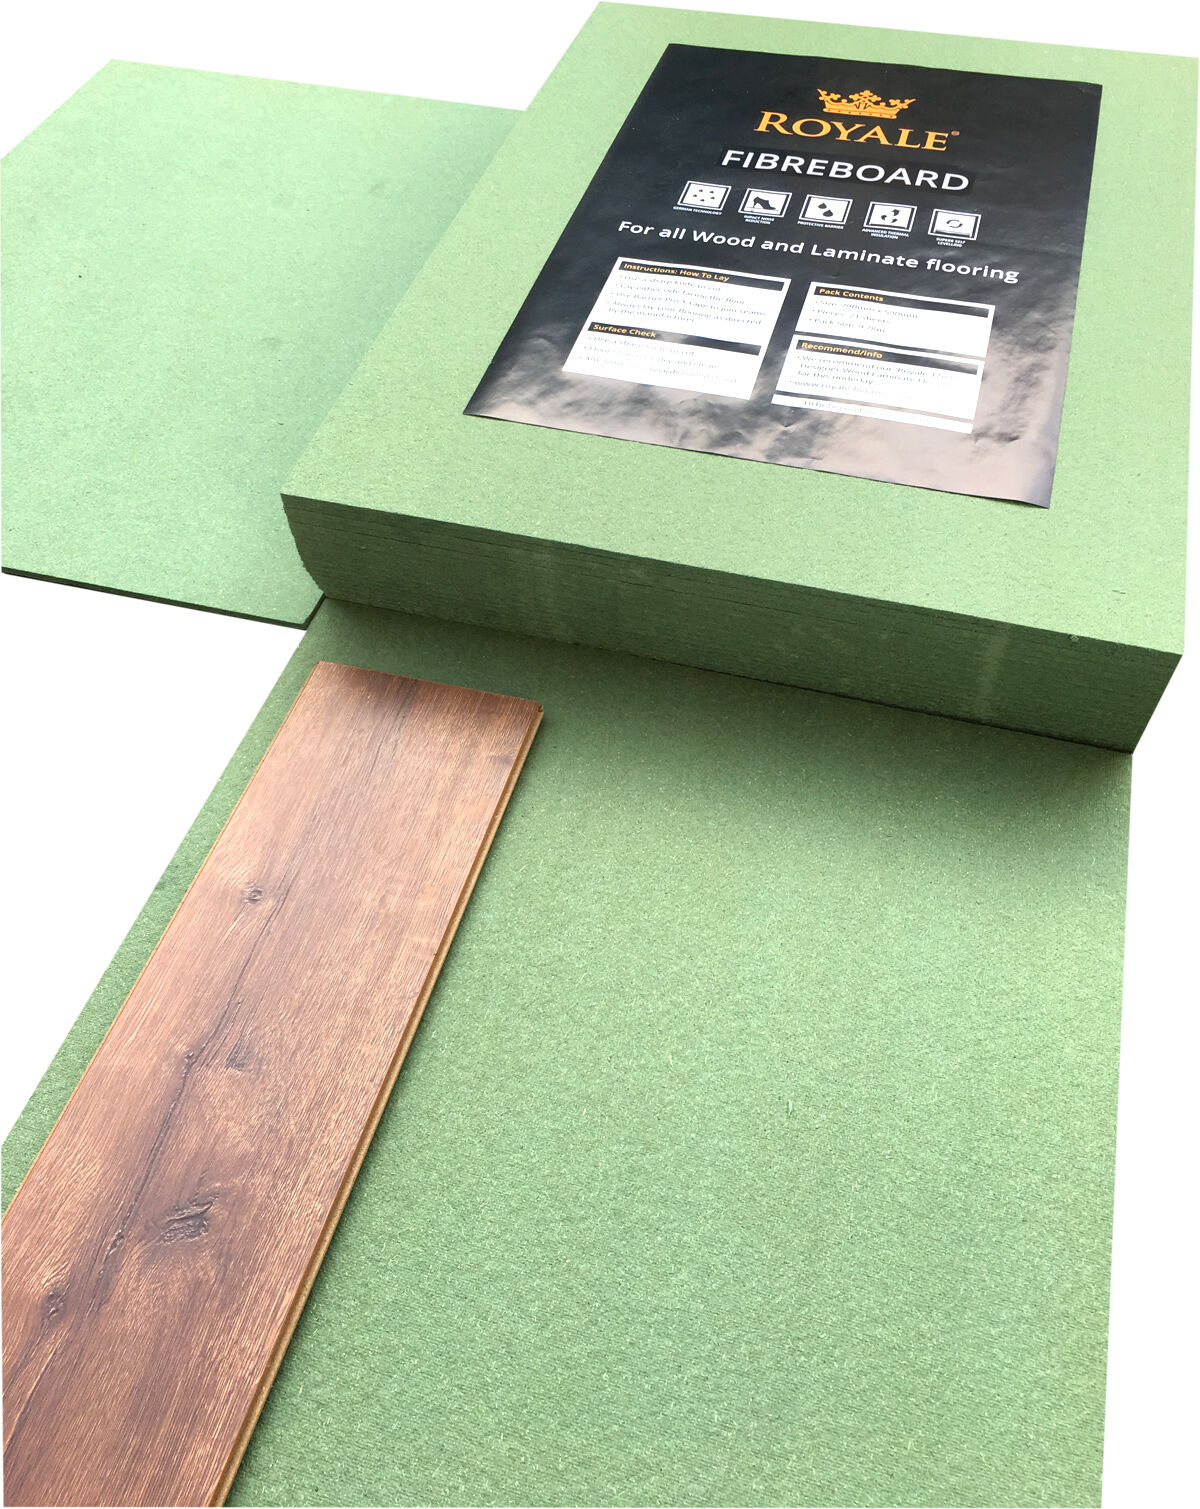 7mm Fibreboard Underlay Laminate Or Wood Flooring 7mm